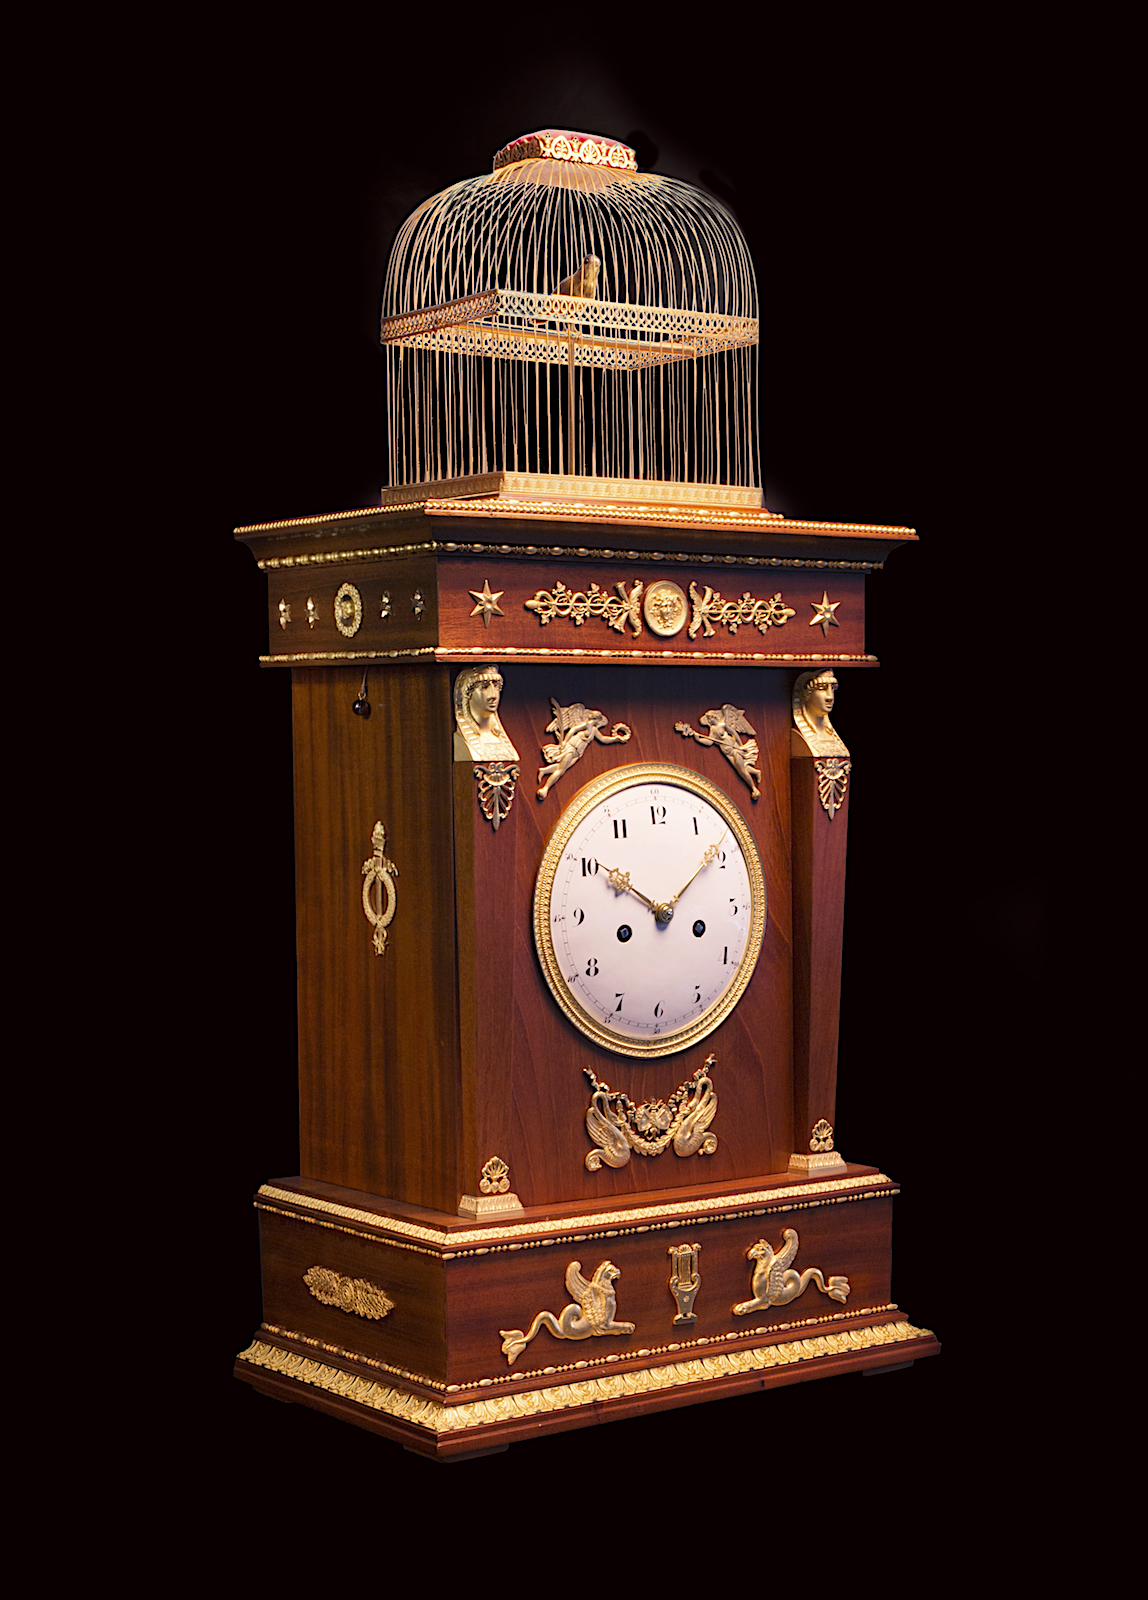 Jaquet Droz Singing Bird Clock